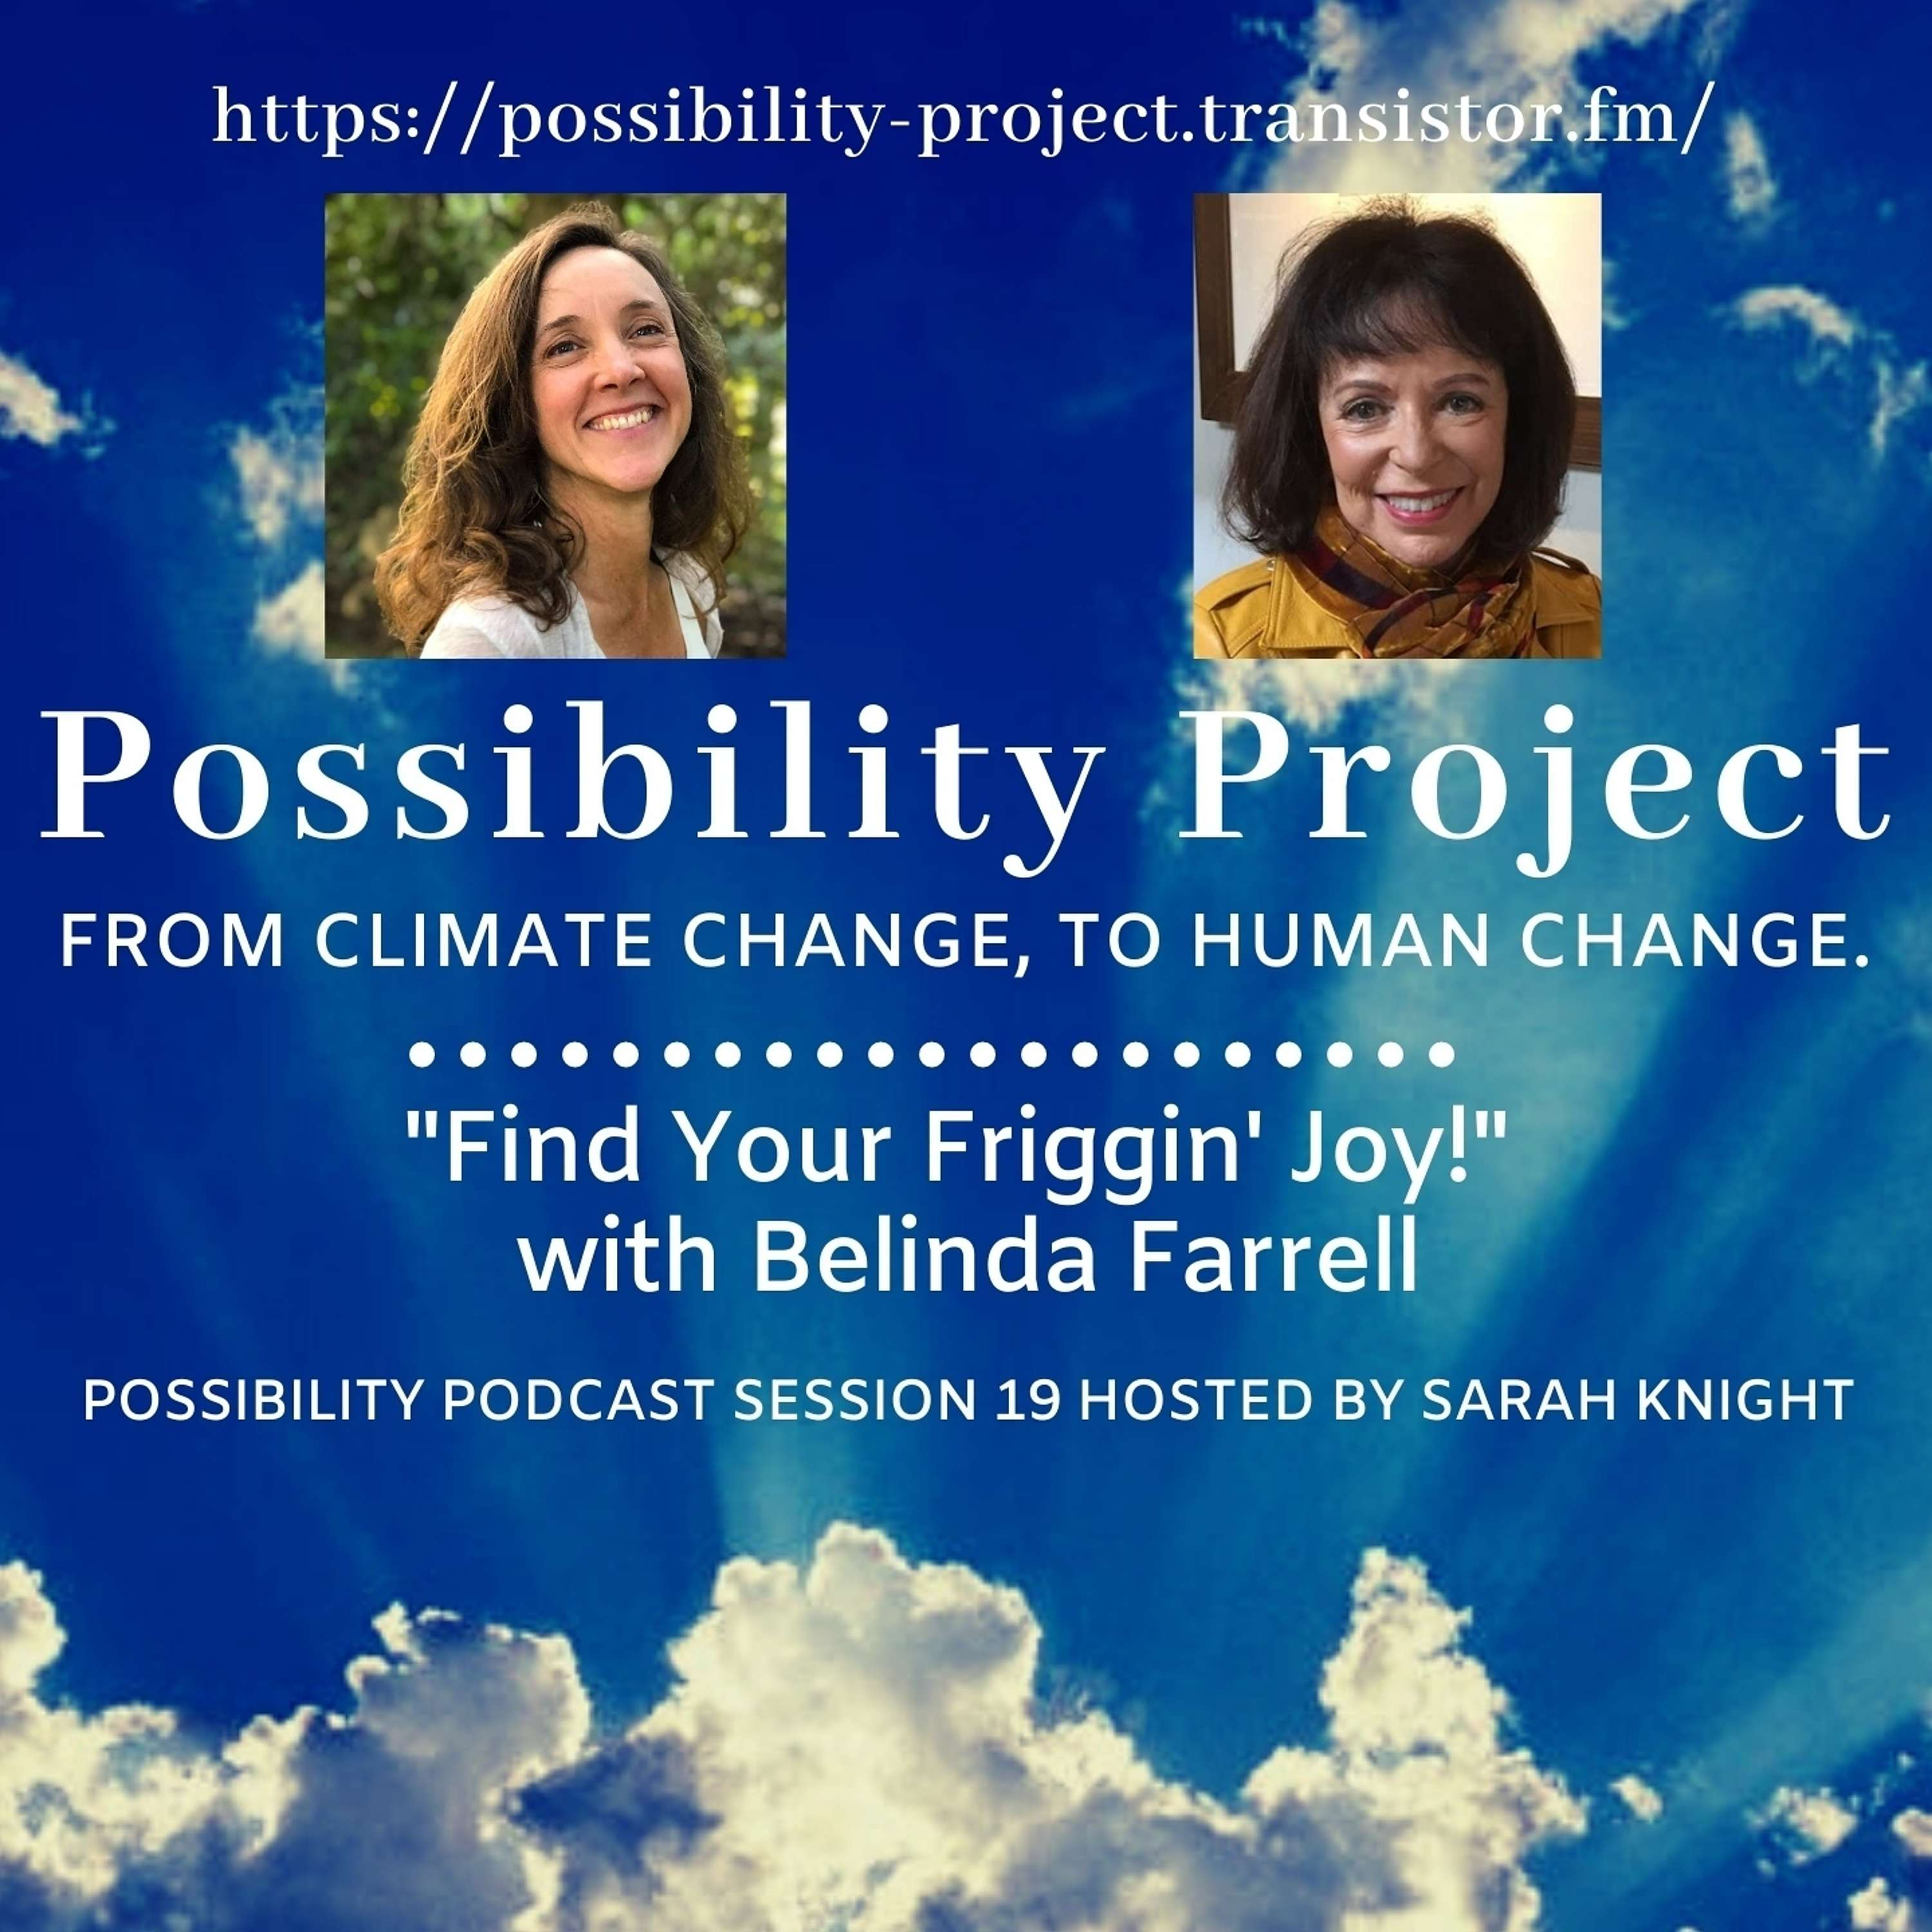 Find Your Friggin' Joy! Possibility Podcast Session 19